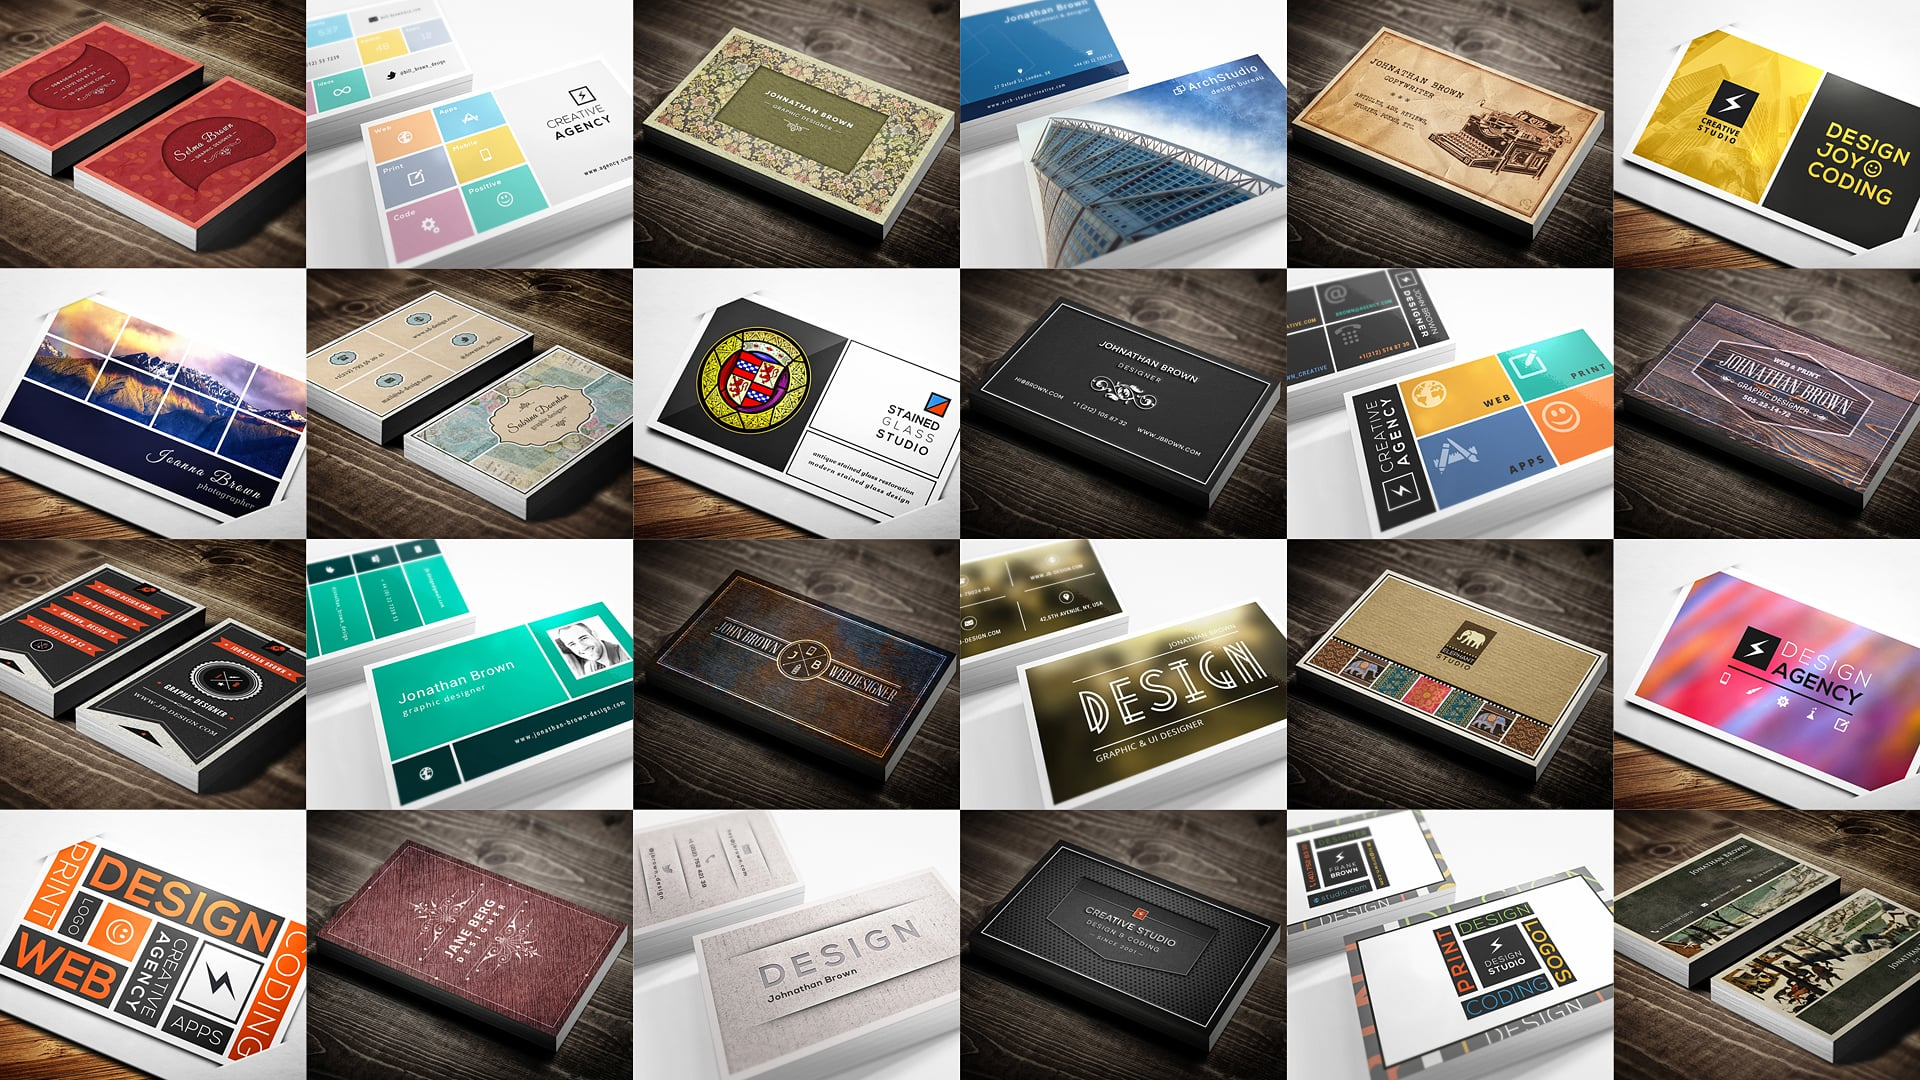 15 Best Photography Business Cards 2019 - Large Banner